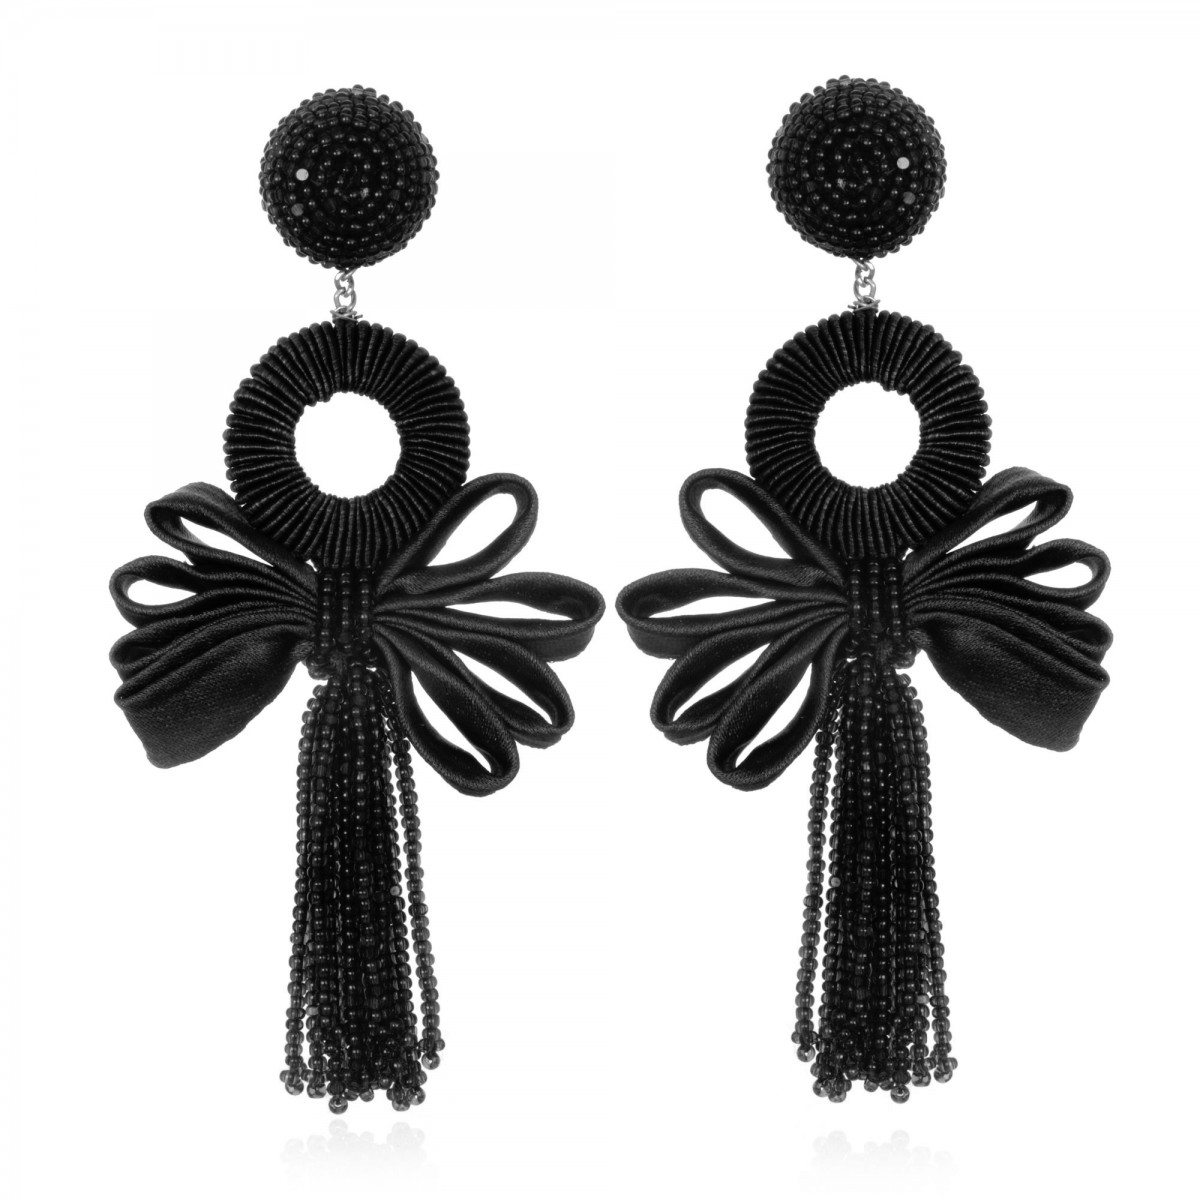 Beijing Black Bow Earrings by SUZANNA DAI